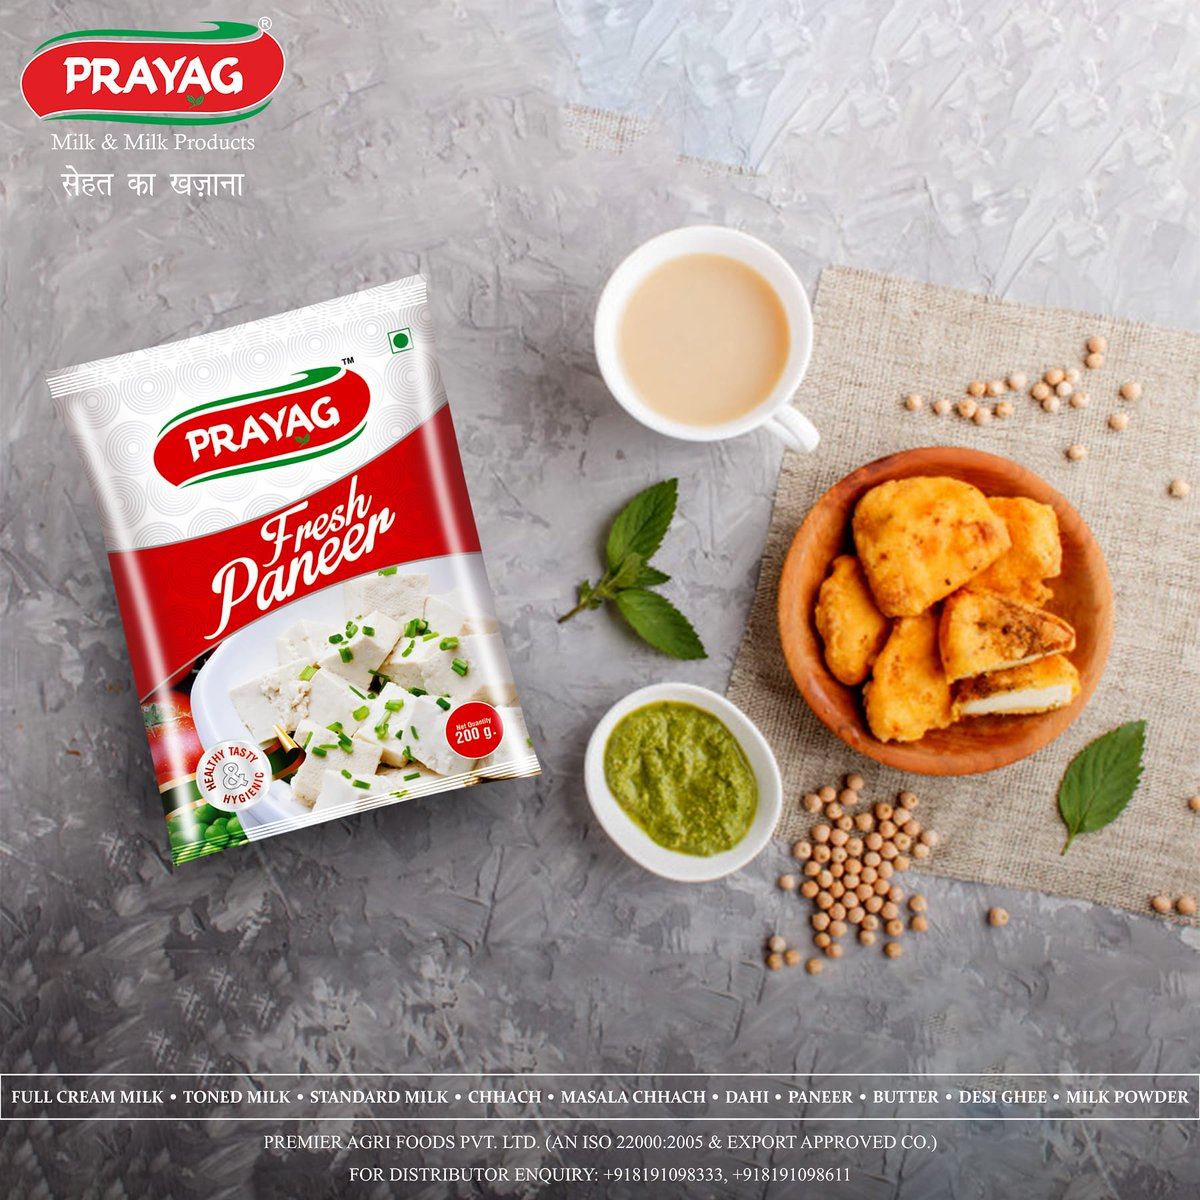 A packet full of nutritious goodness!  Make your winter evenings delicious and memorable with piping hot Paneer Pakoras made with Prayag Paneer!   *Prayag Paneer*  #paneer #tastyandhealthy #purity #freshness #healthfirst #prayag #prayagmilk #dairyproducts #Bareilly